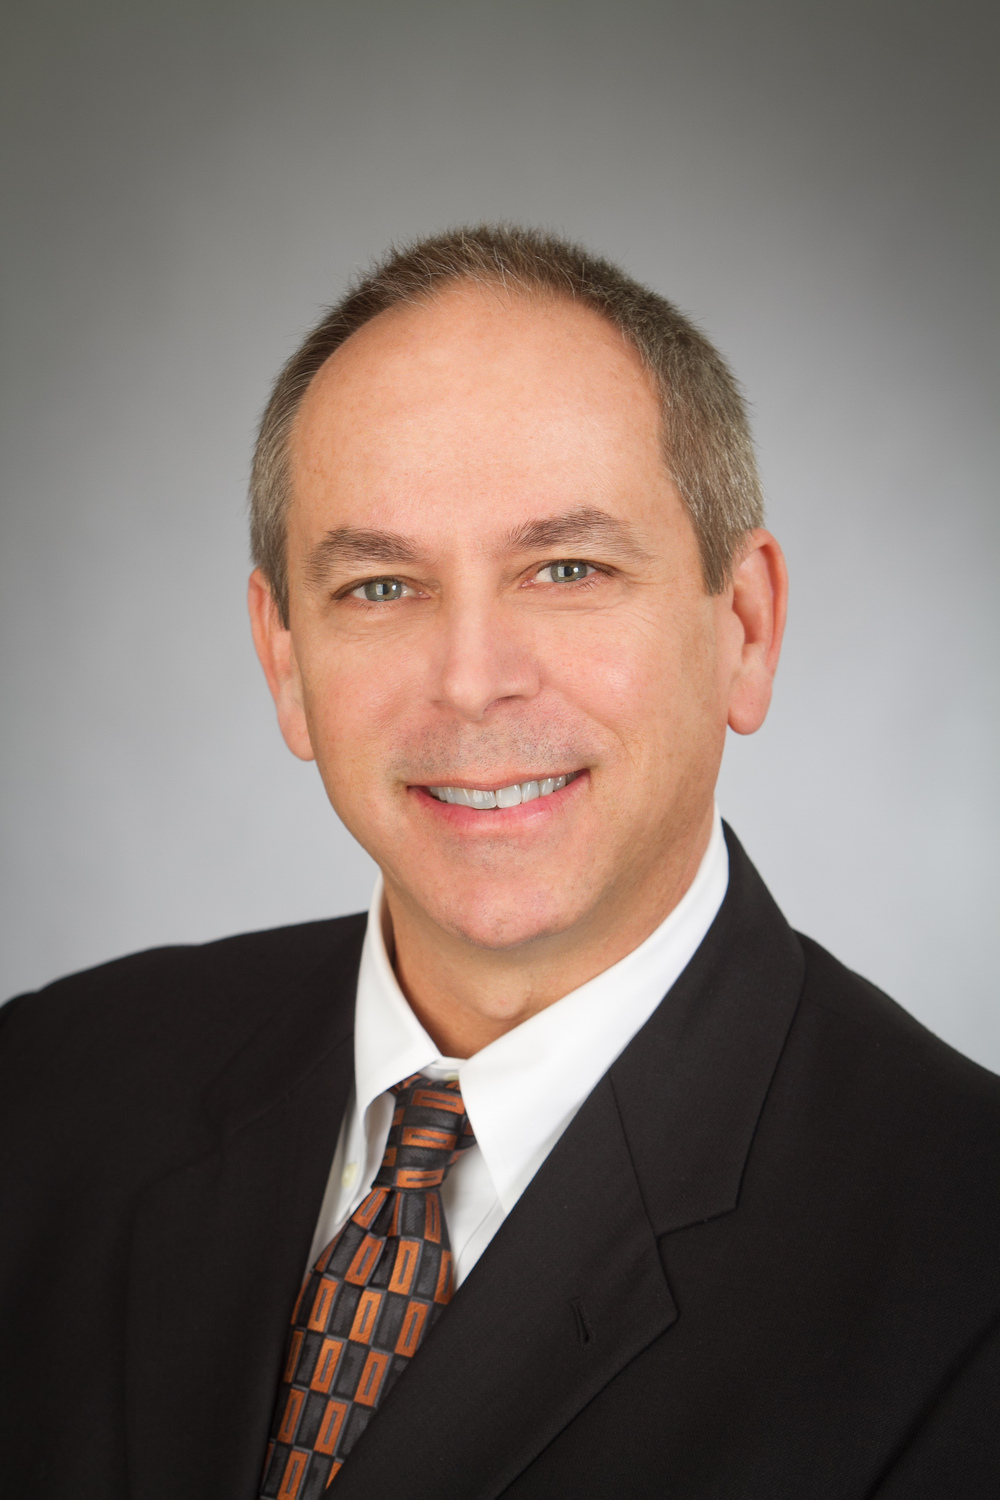 Stephen A. Metzger Chief Operating Officer An alumnus of Deloitte and Touche and Arnel Development Company, Mr. Metzger guides the financial and tax affairs of the company; including contract review, financings, closings, and lease execution.